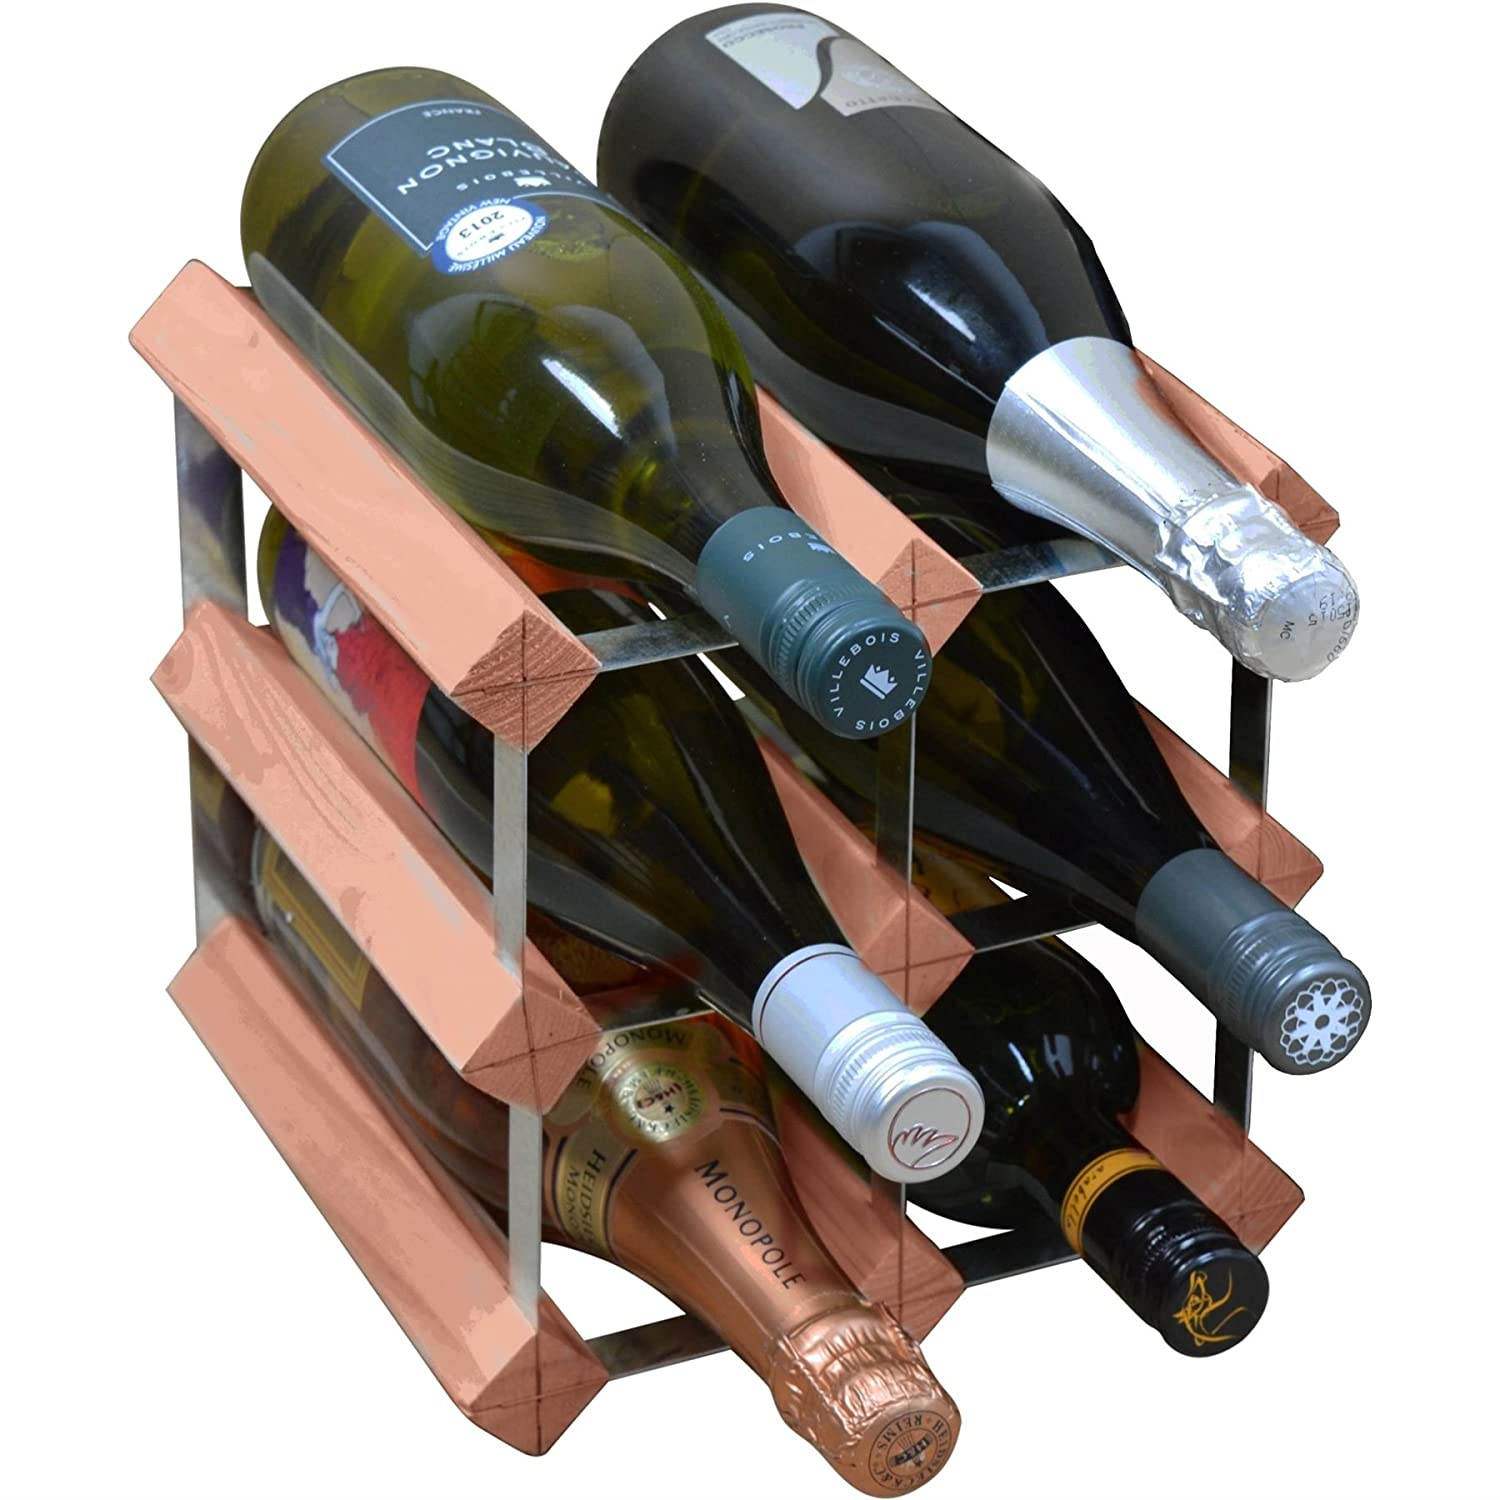 A CHARMING WINE BOTTLE HOLDER RACK FISH GUZZLER GREAT GIFT